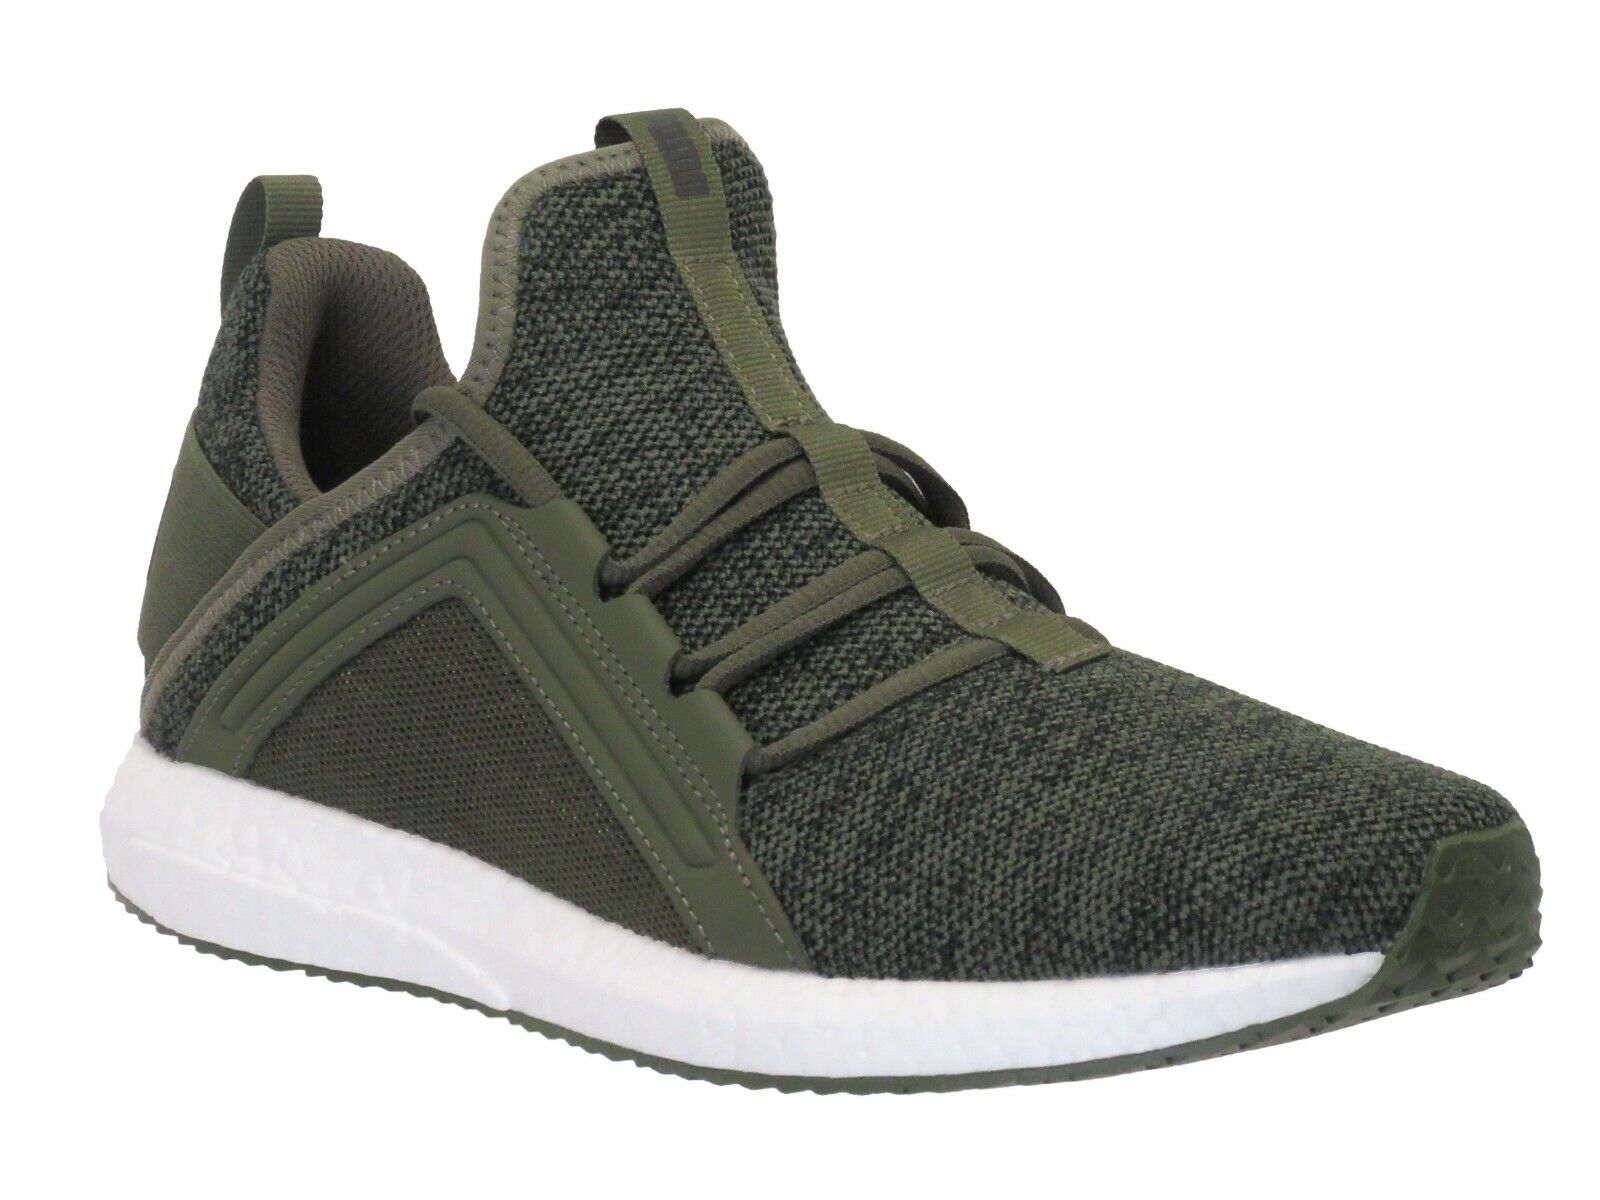 PUMA Men's Mega Nrgy Knit Ankle-High Running Shoe